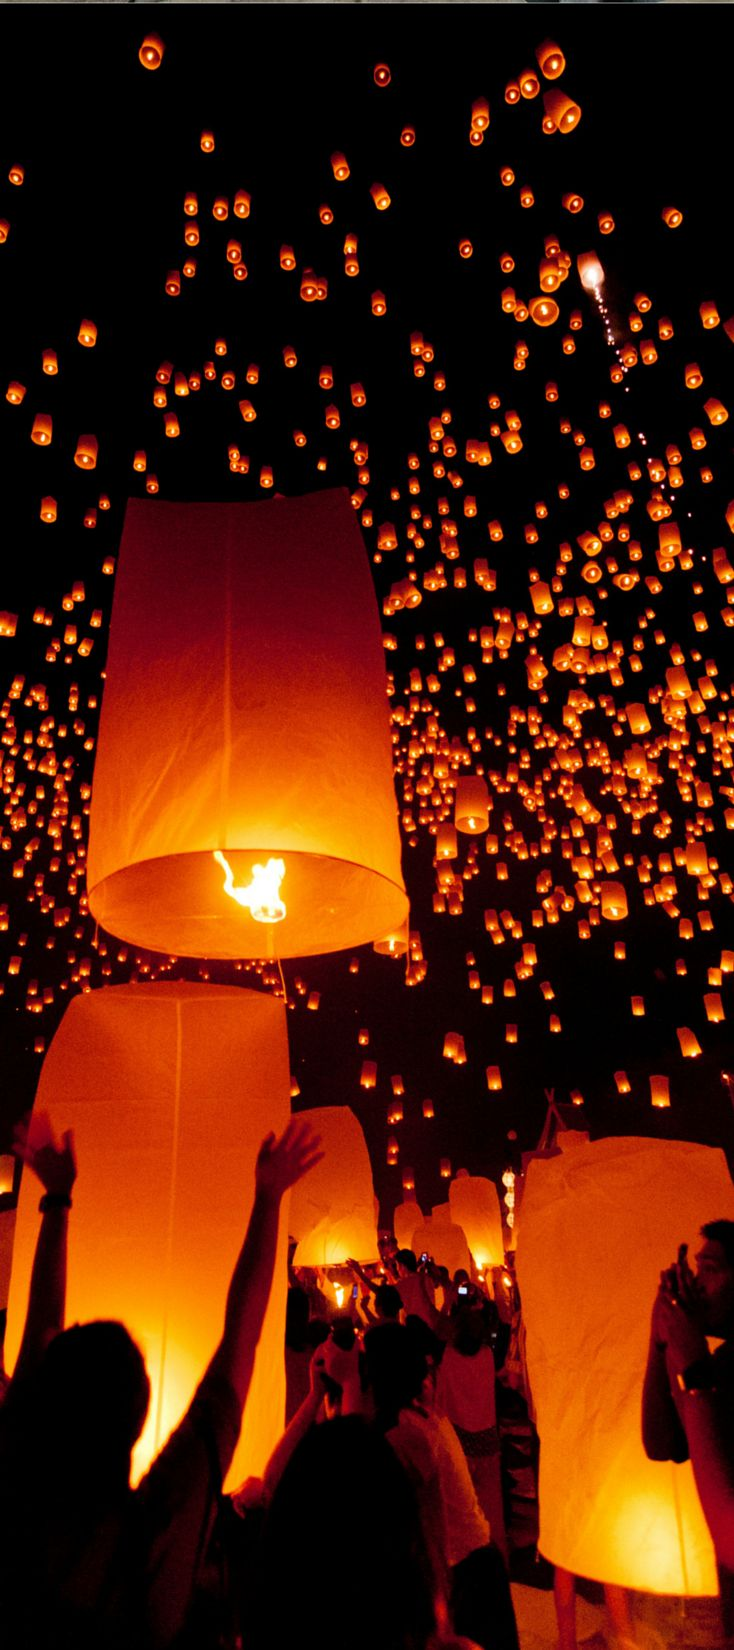 17 best ideas about lantern festival on pinterest floating lantern festival floating. Black Bedroom Furniture Sets. Home Design Ideas